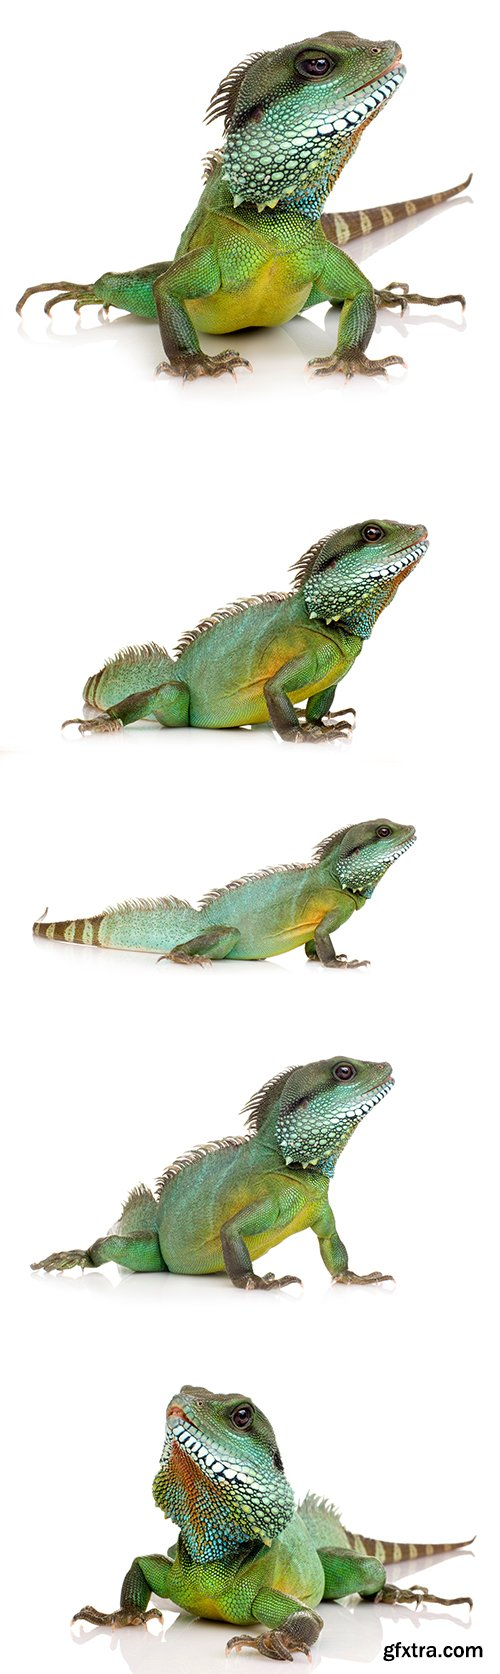 Indian Water-Dragon Isolated - 6xJPGs